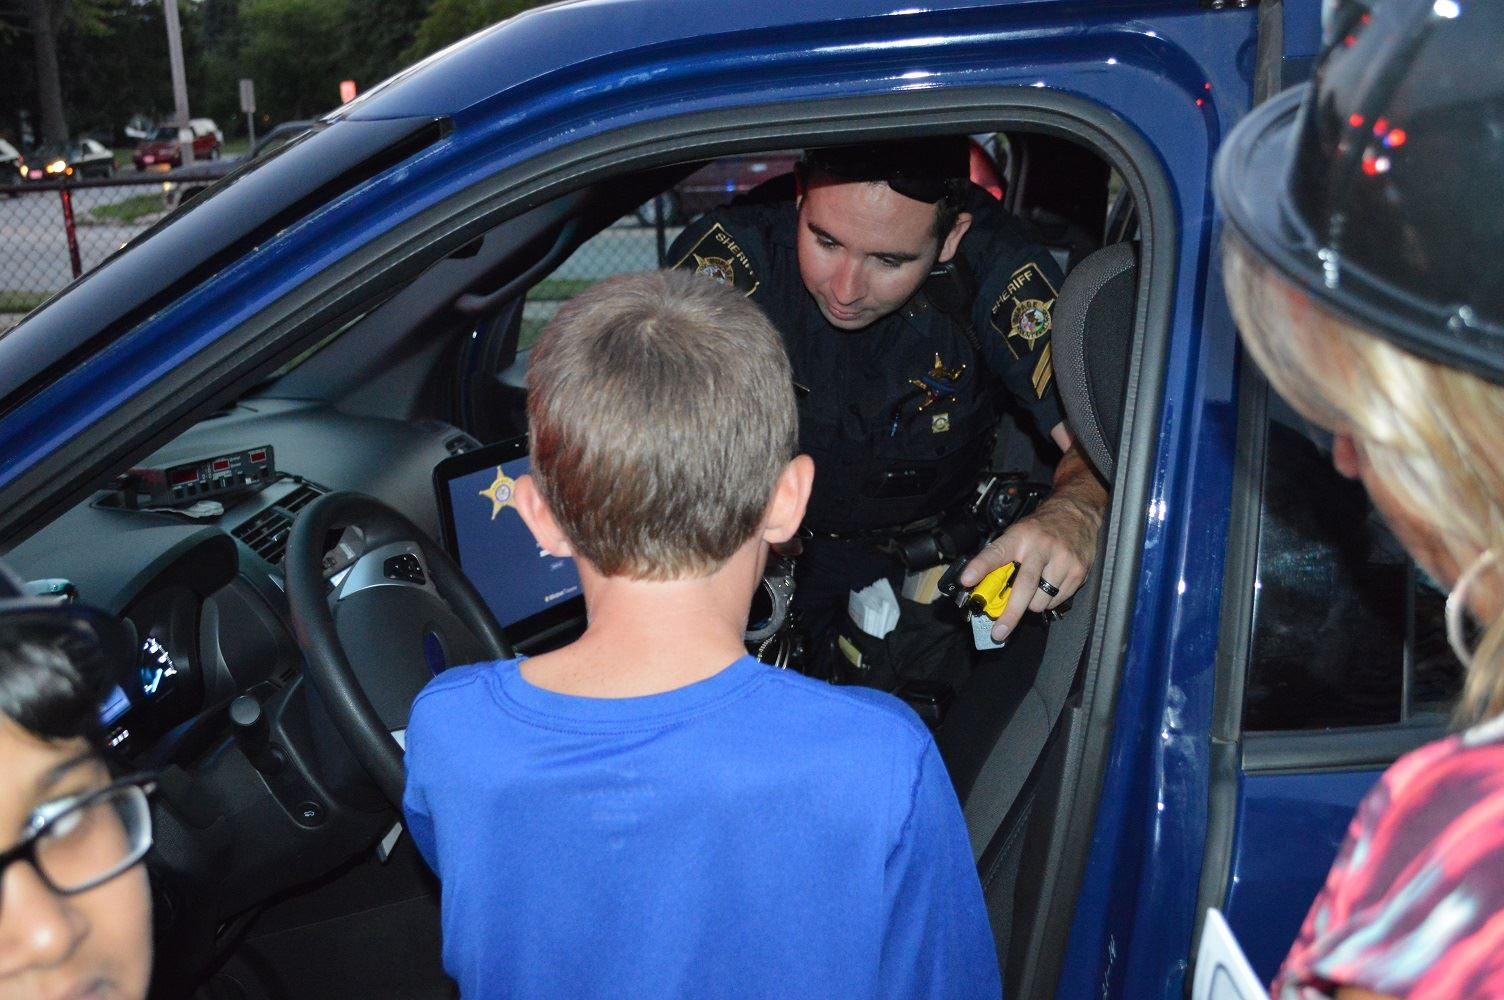 Families gather around a DuPage County Sheriff's vehicle during a National Night Out event at the Iowa Community Center, Aug. 2.